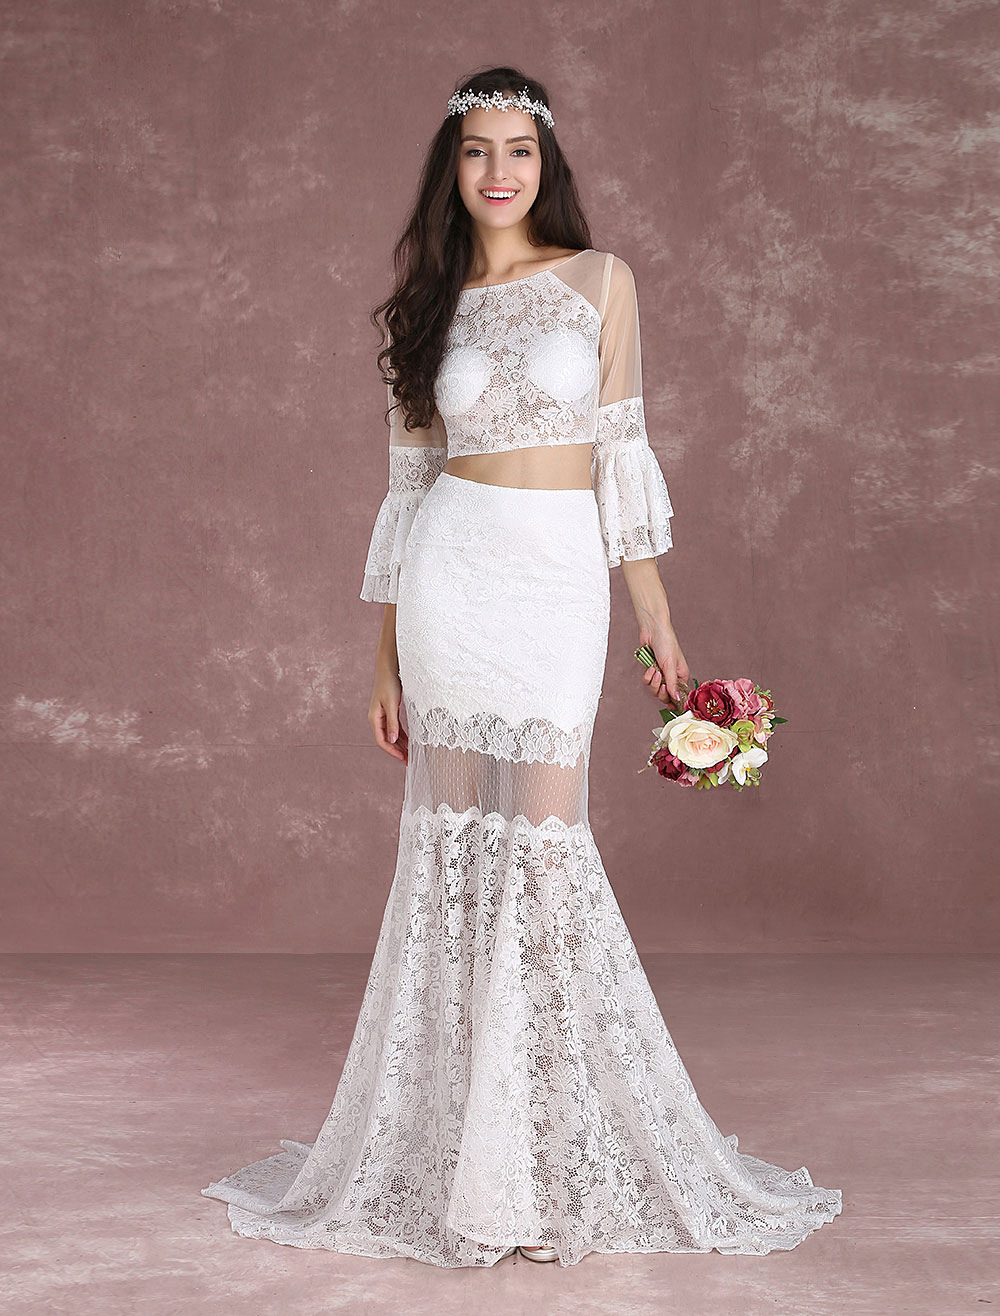 Crop top wedding dresses 2018 boho beach summer bridal for Wedding dress with illusion top